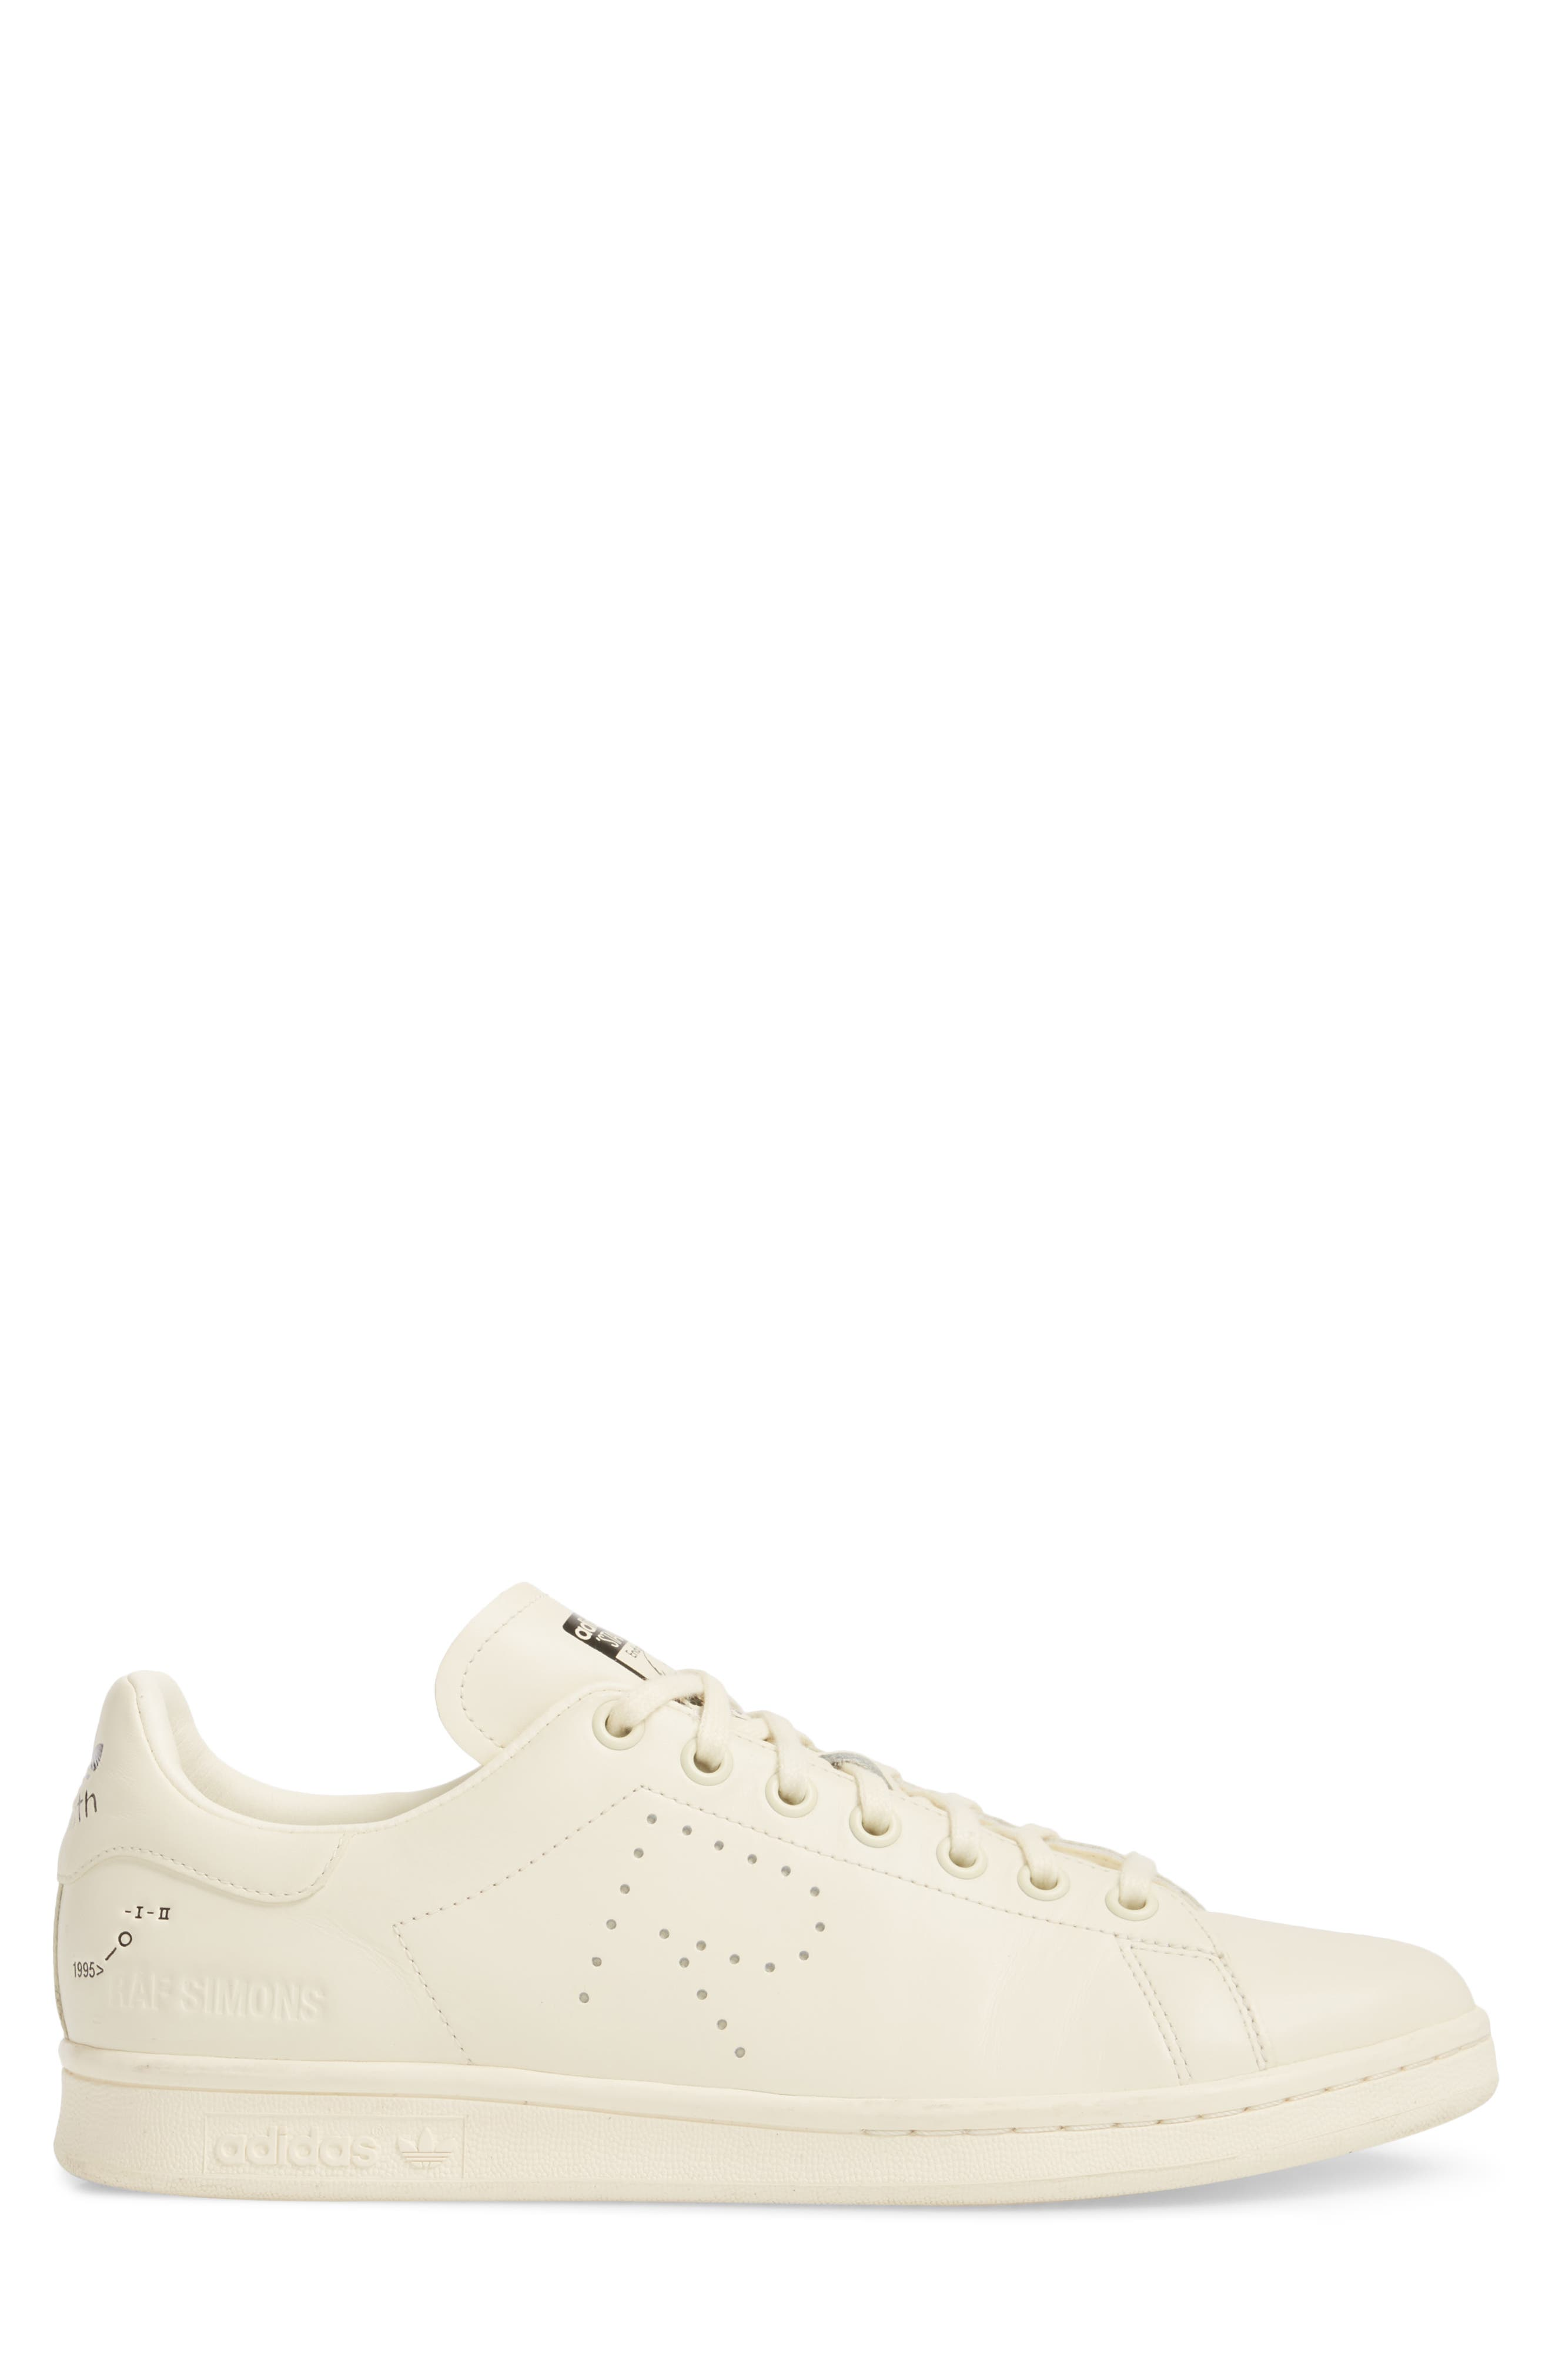 RAF SIMONS BY ADIDAS,                             adidas by Raf Simons 'Stan Smith' Sneaker,                             Alternate thumbnail 3, color,                             151